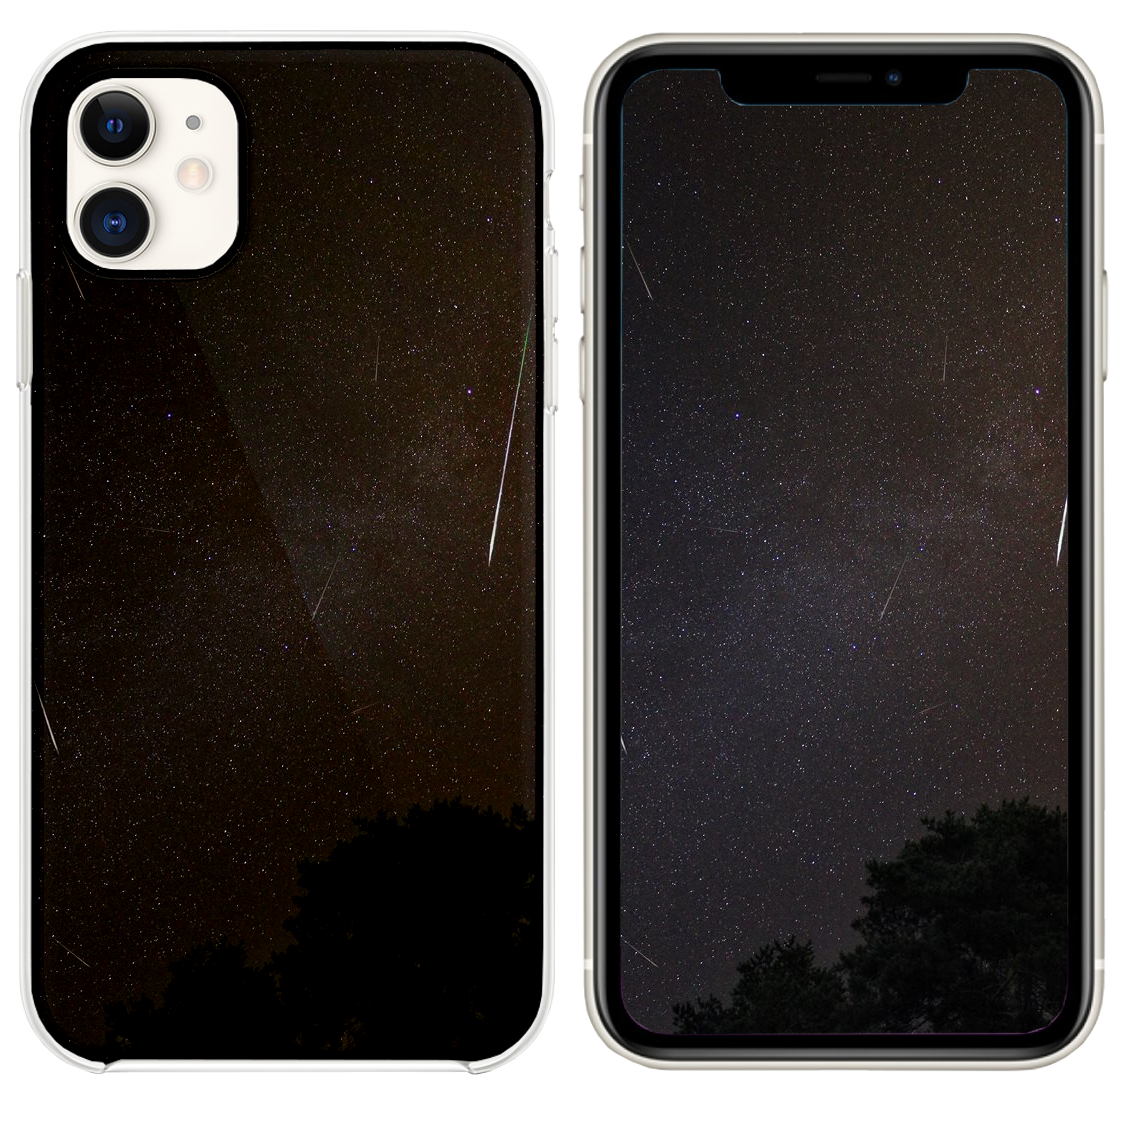 This Is Perseid Meteor Shower Iphone 11 Case Perseid Meteor Shower Iphone Iphone 11